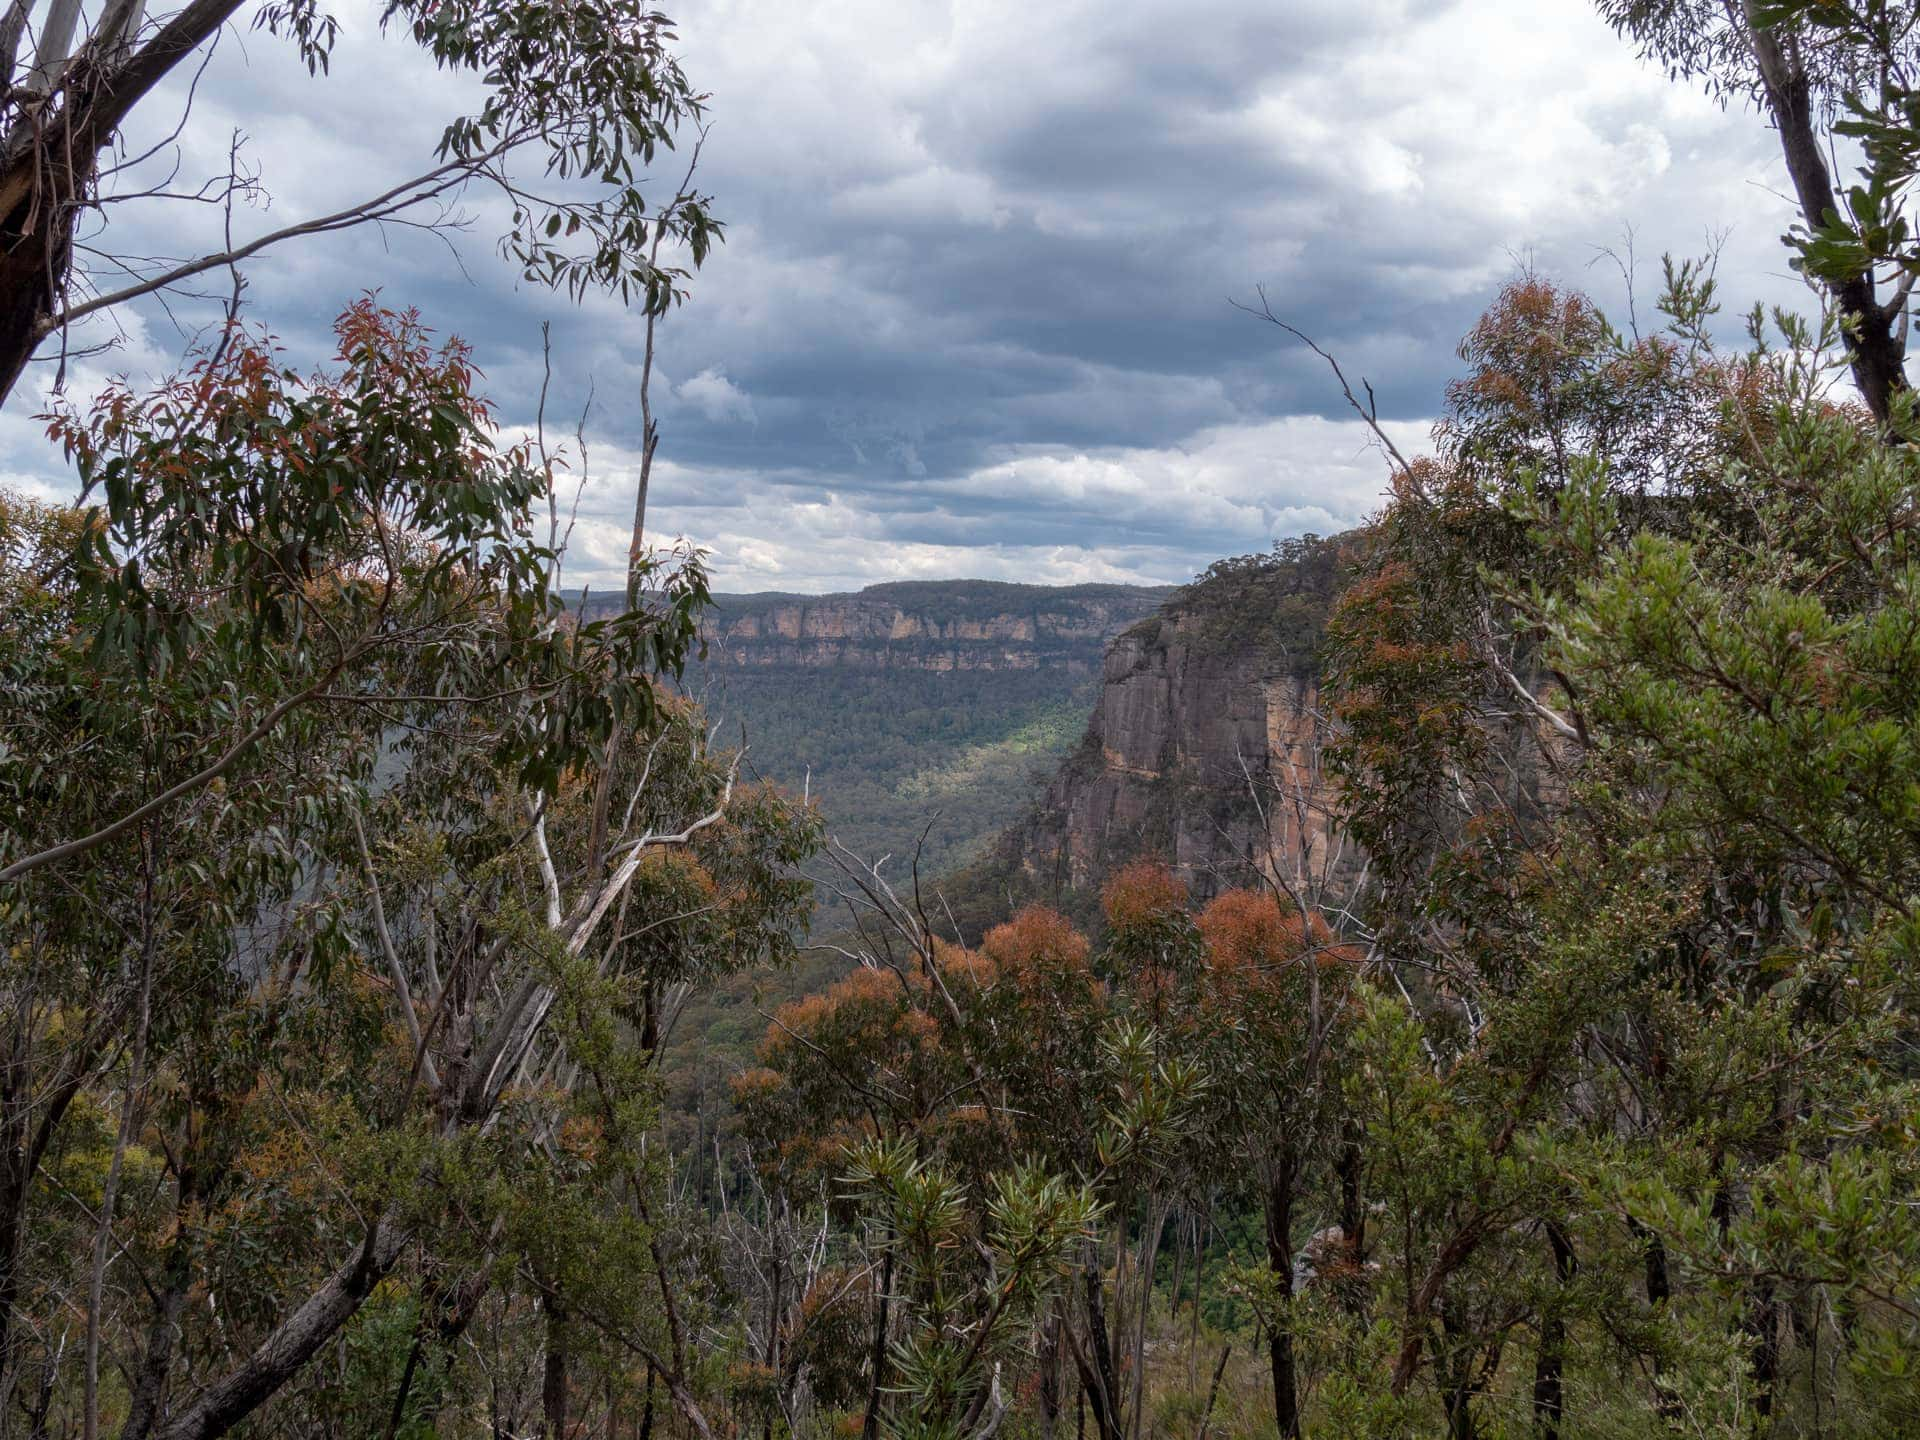 Les Blue Mountains, à 2h de Sydney en voiture ou train 34